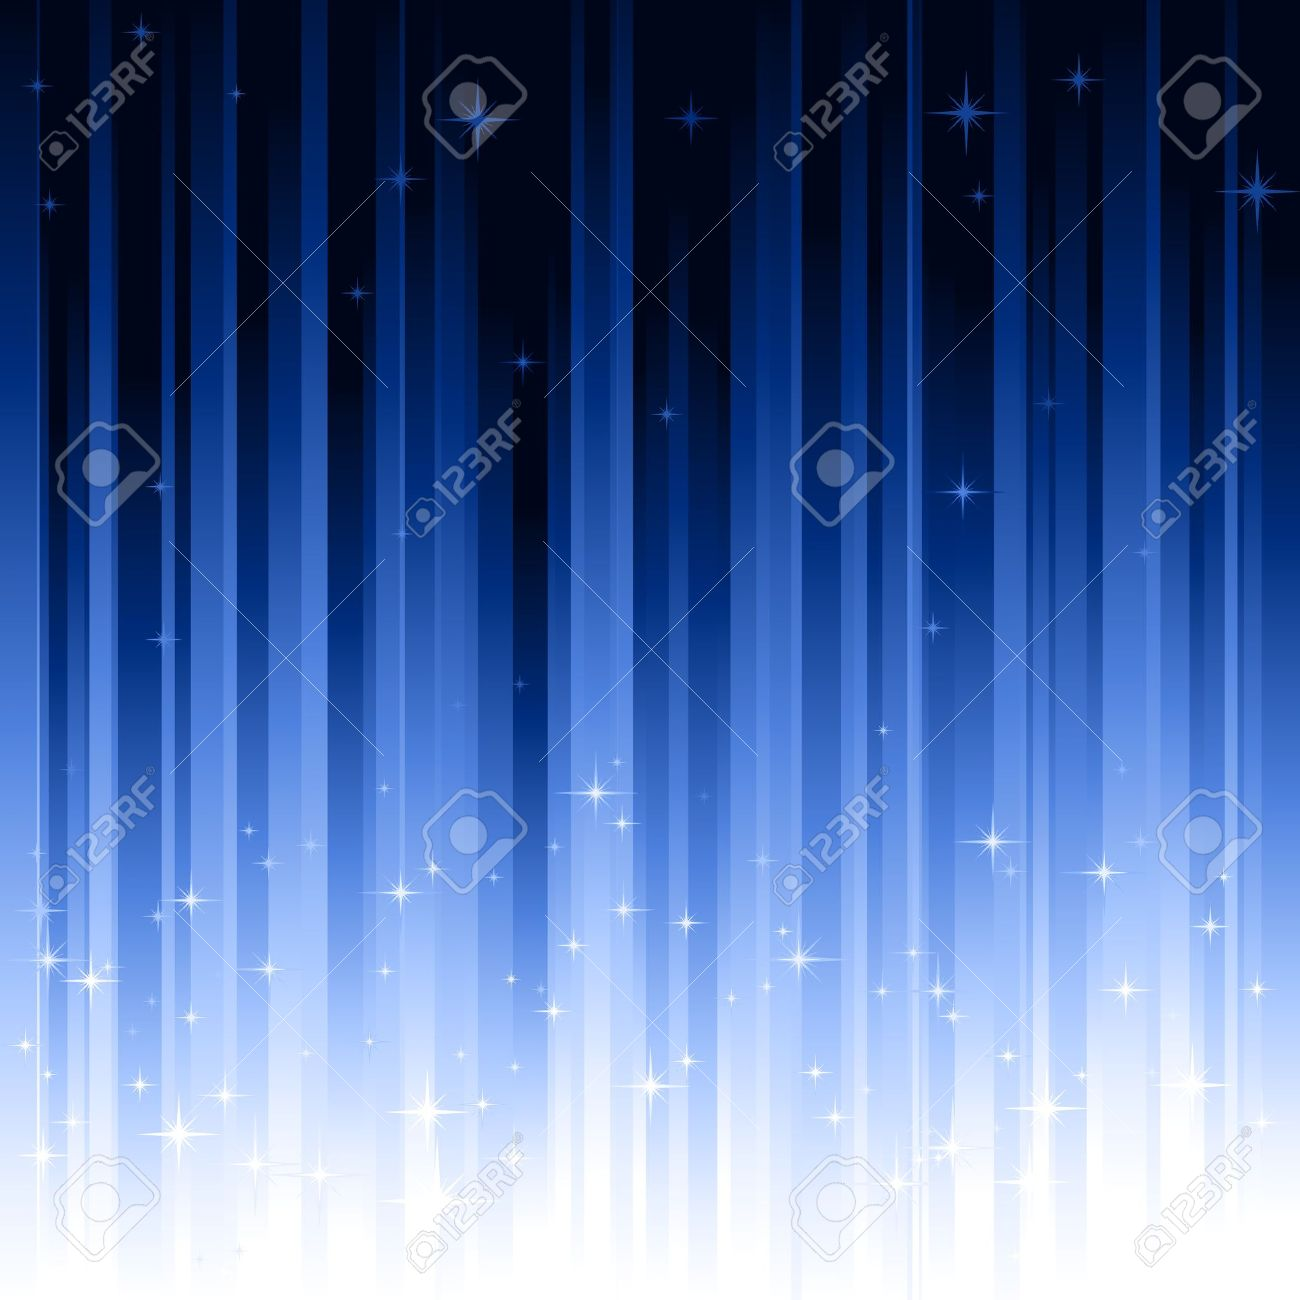 Background image linear gradient - Blue Festive Background With Stars Stripes Controlled By 1 Linear Gradient Use Of 10